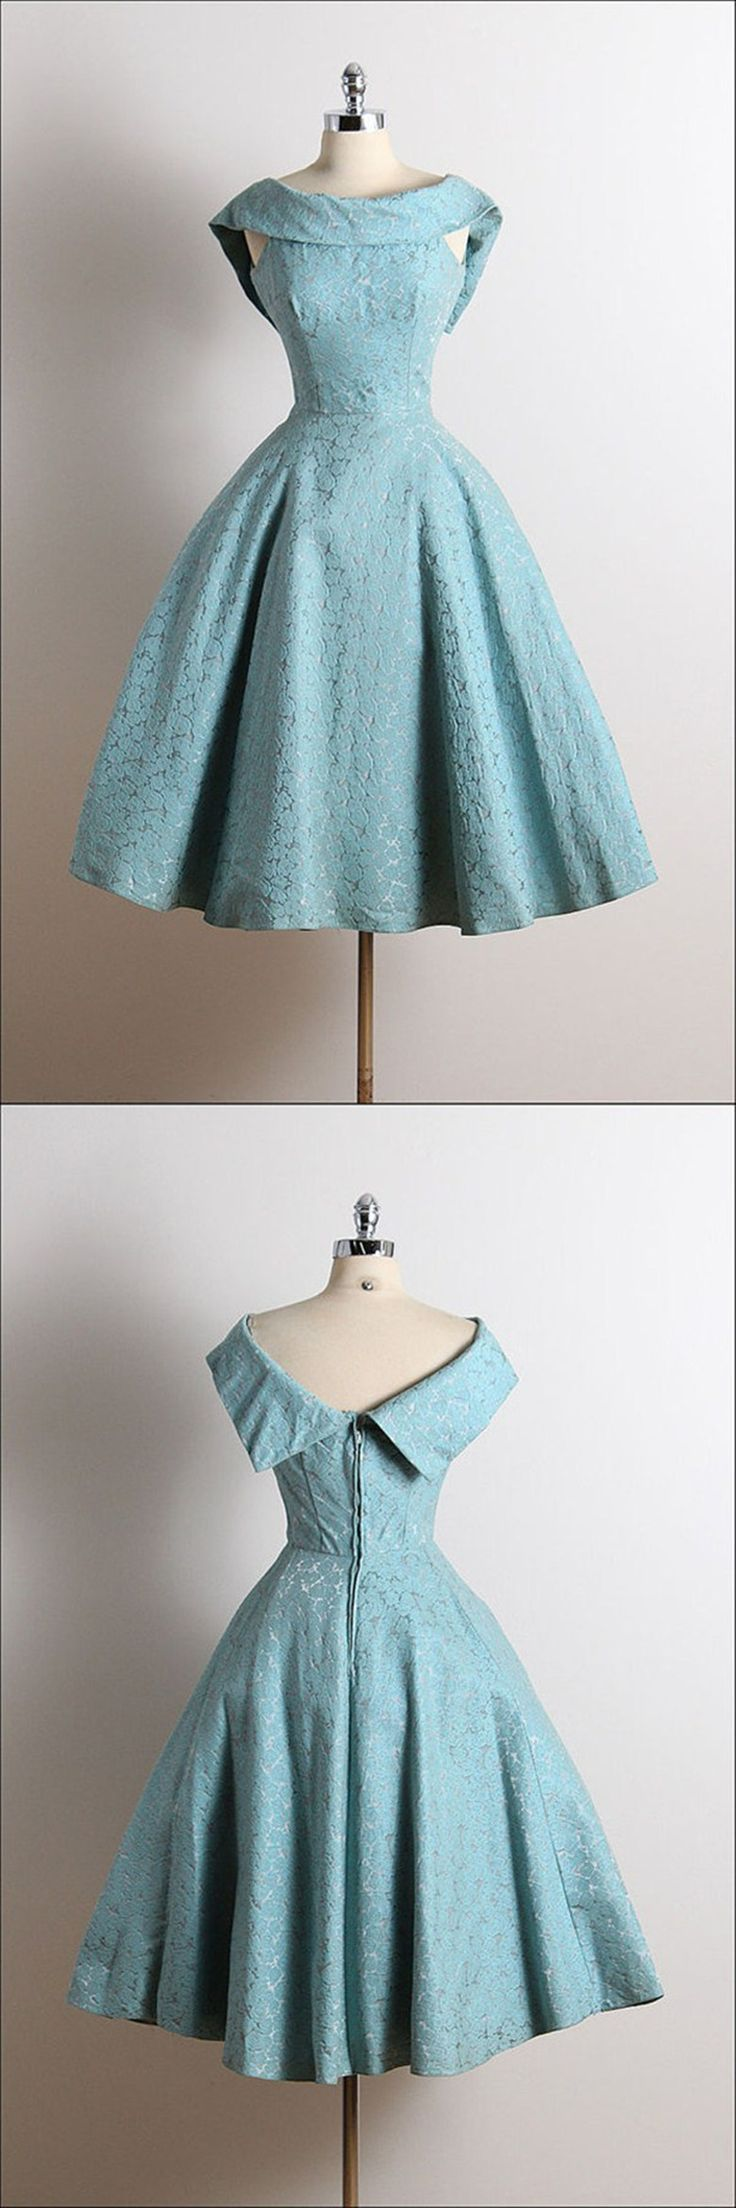 2016 homecoming dress,vintage homecoming dress,1950s homecoming dress,fancy…